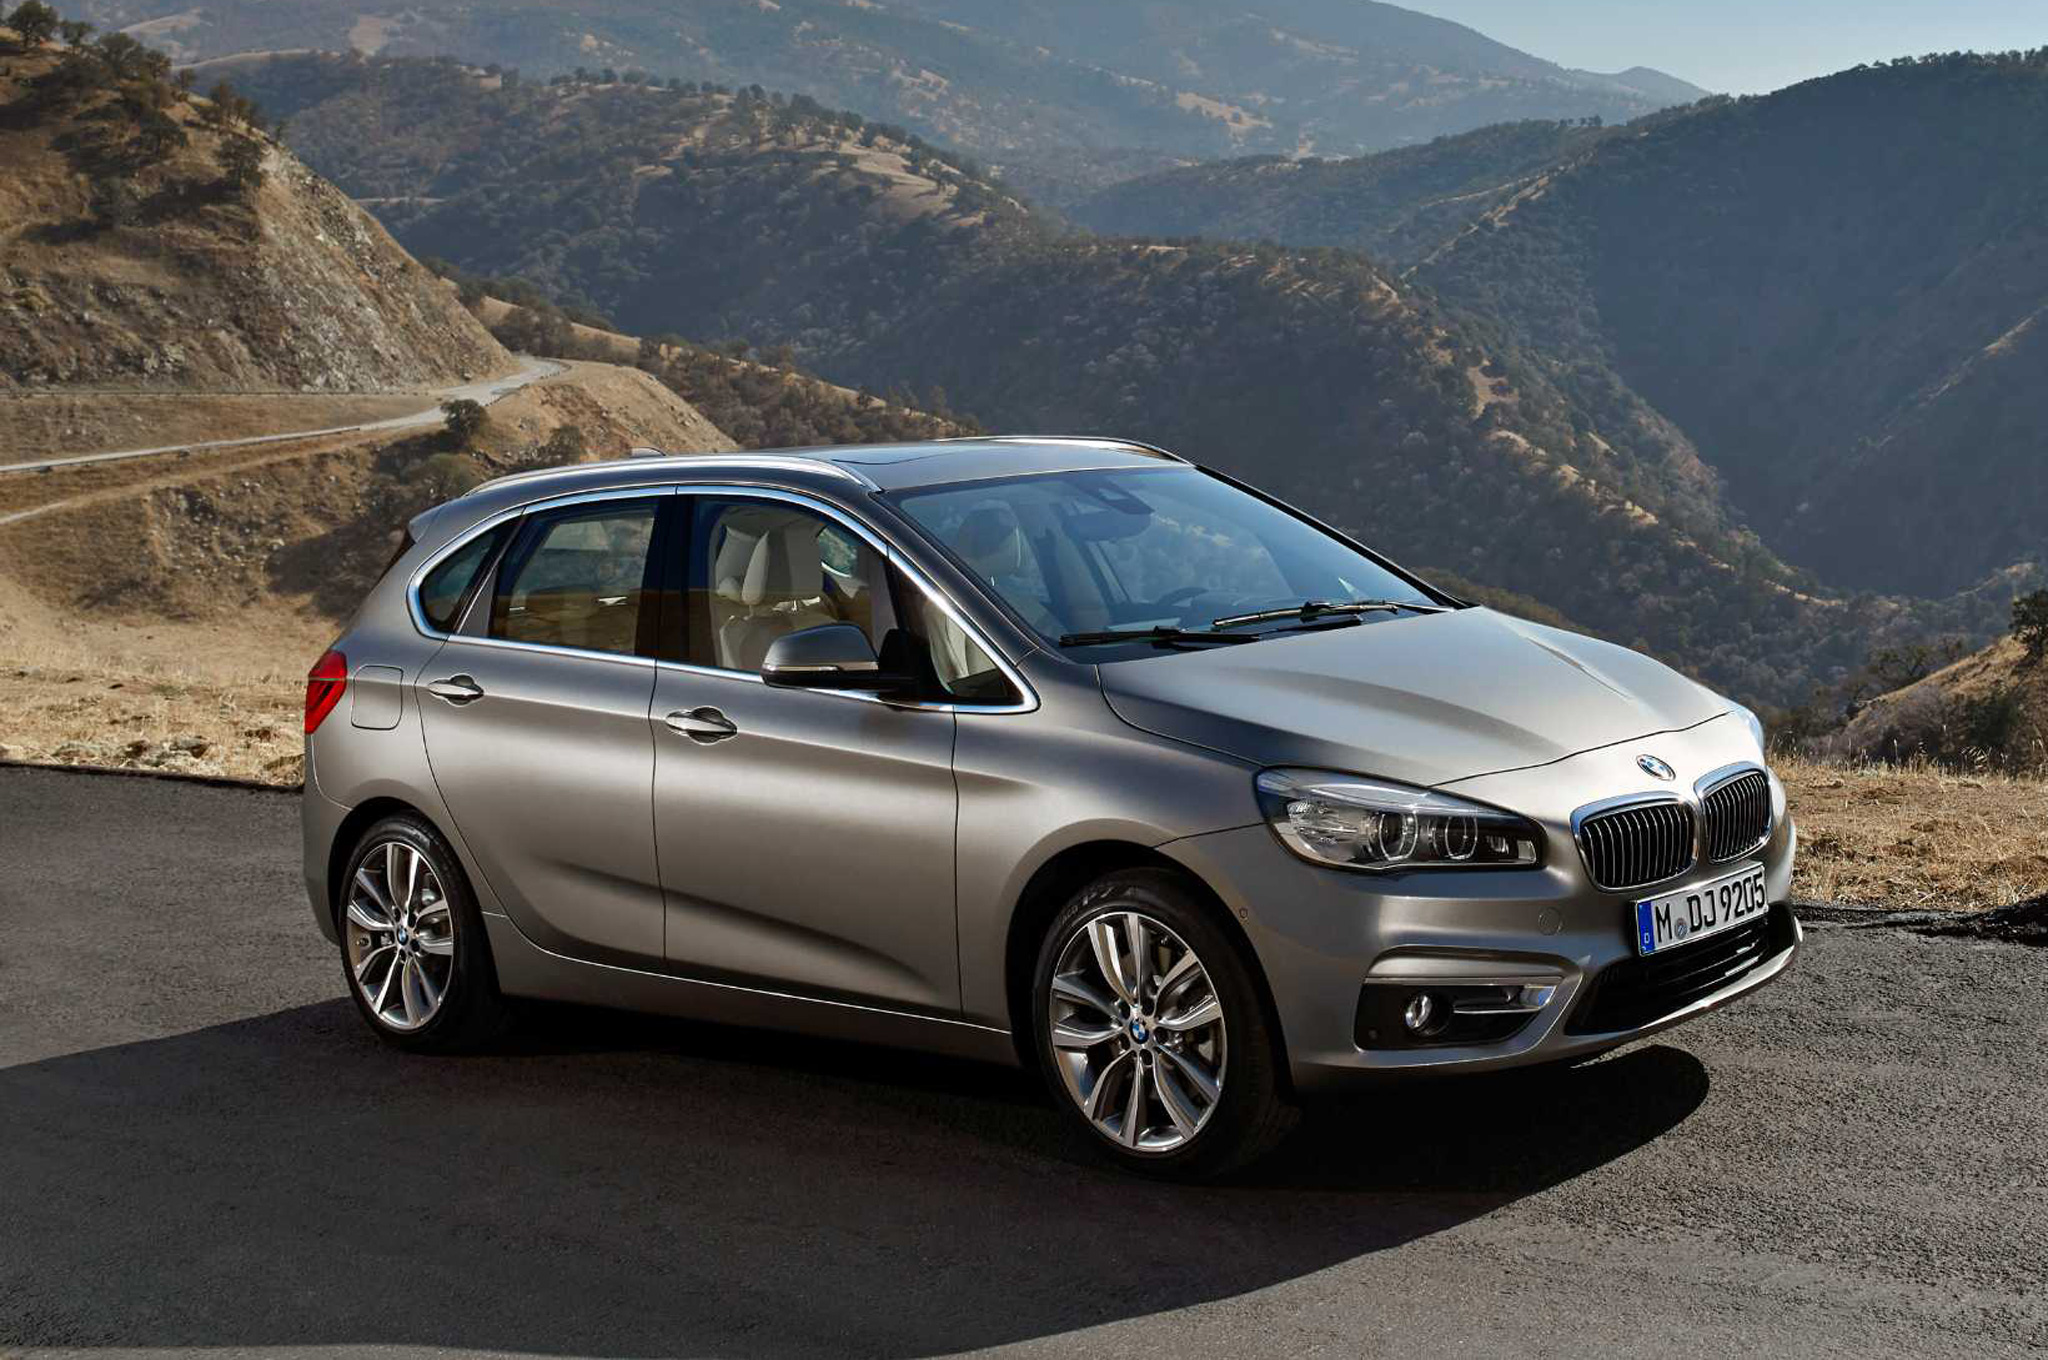 bmw 2 series active tourer 2017 hd wallpapers. Black Bedroom Furniture Sets. Home Design Ideas